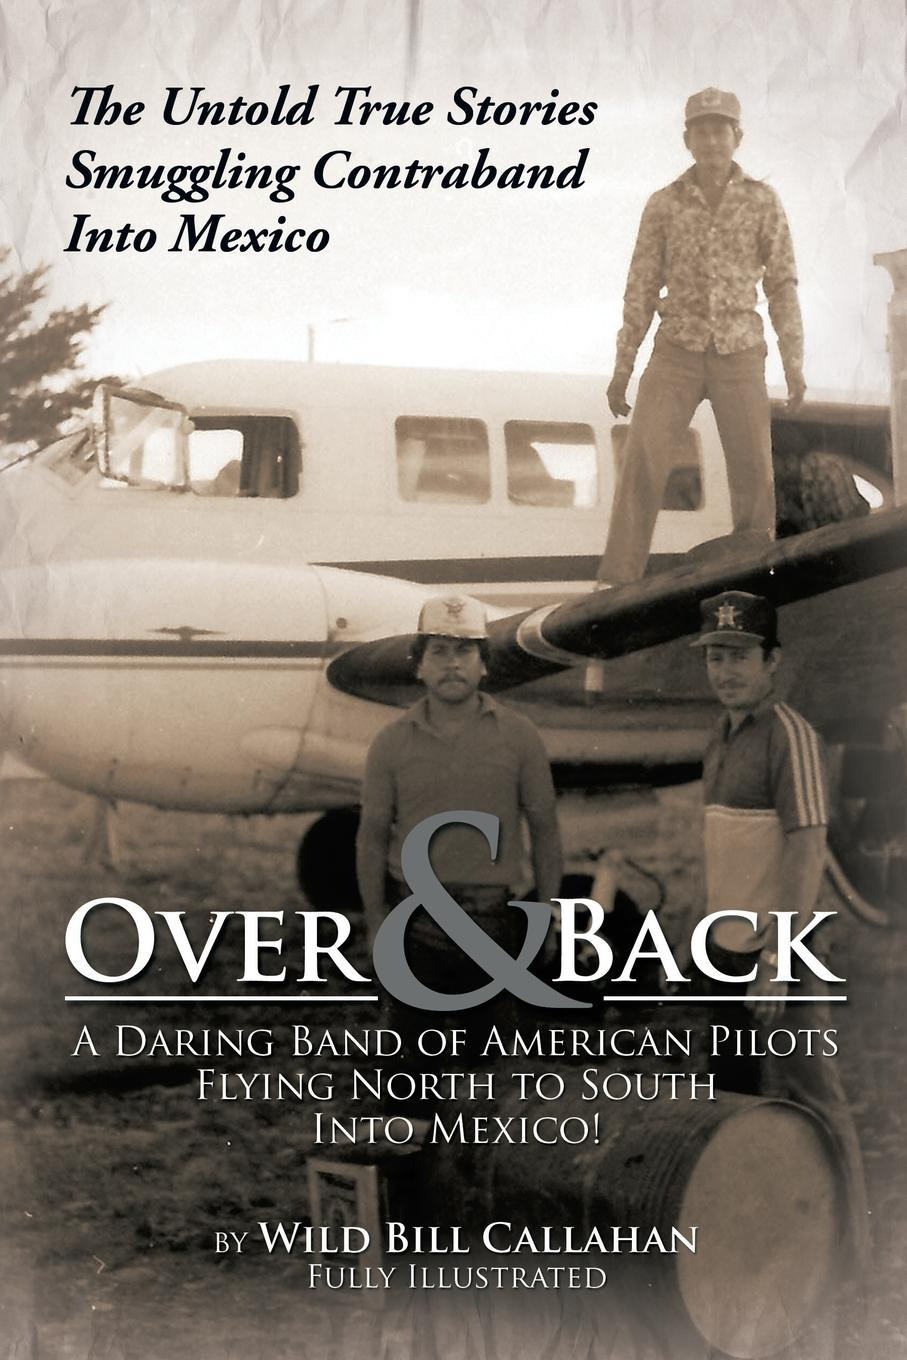 Wild Bill Callahan Over and Back. A Daring Band of American Pilots Flying North to South Into Mexico!: The Untold True Stories Smuggling Contraband Into Mexico into the wild